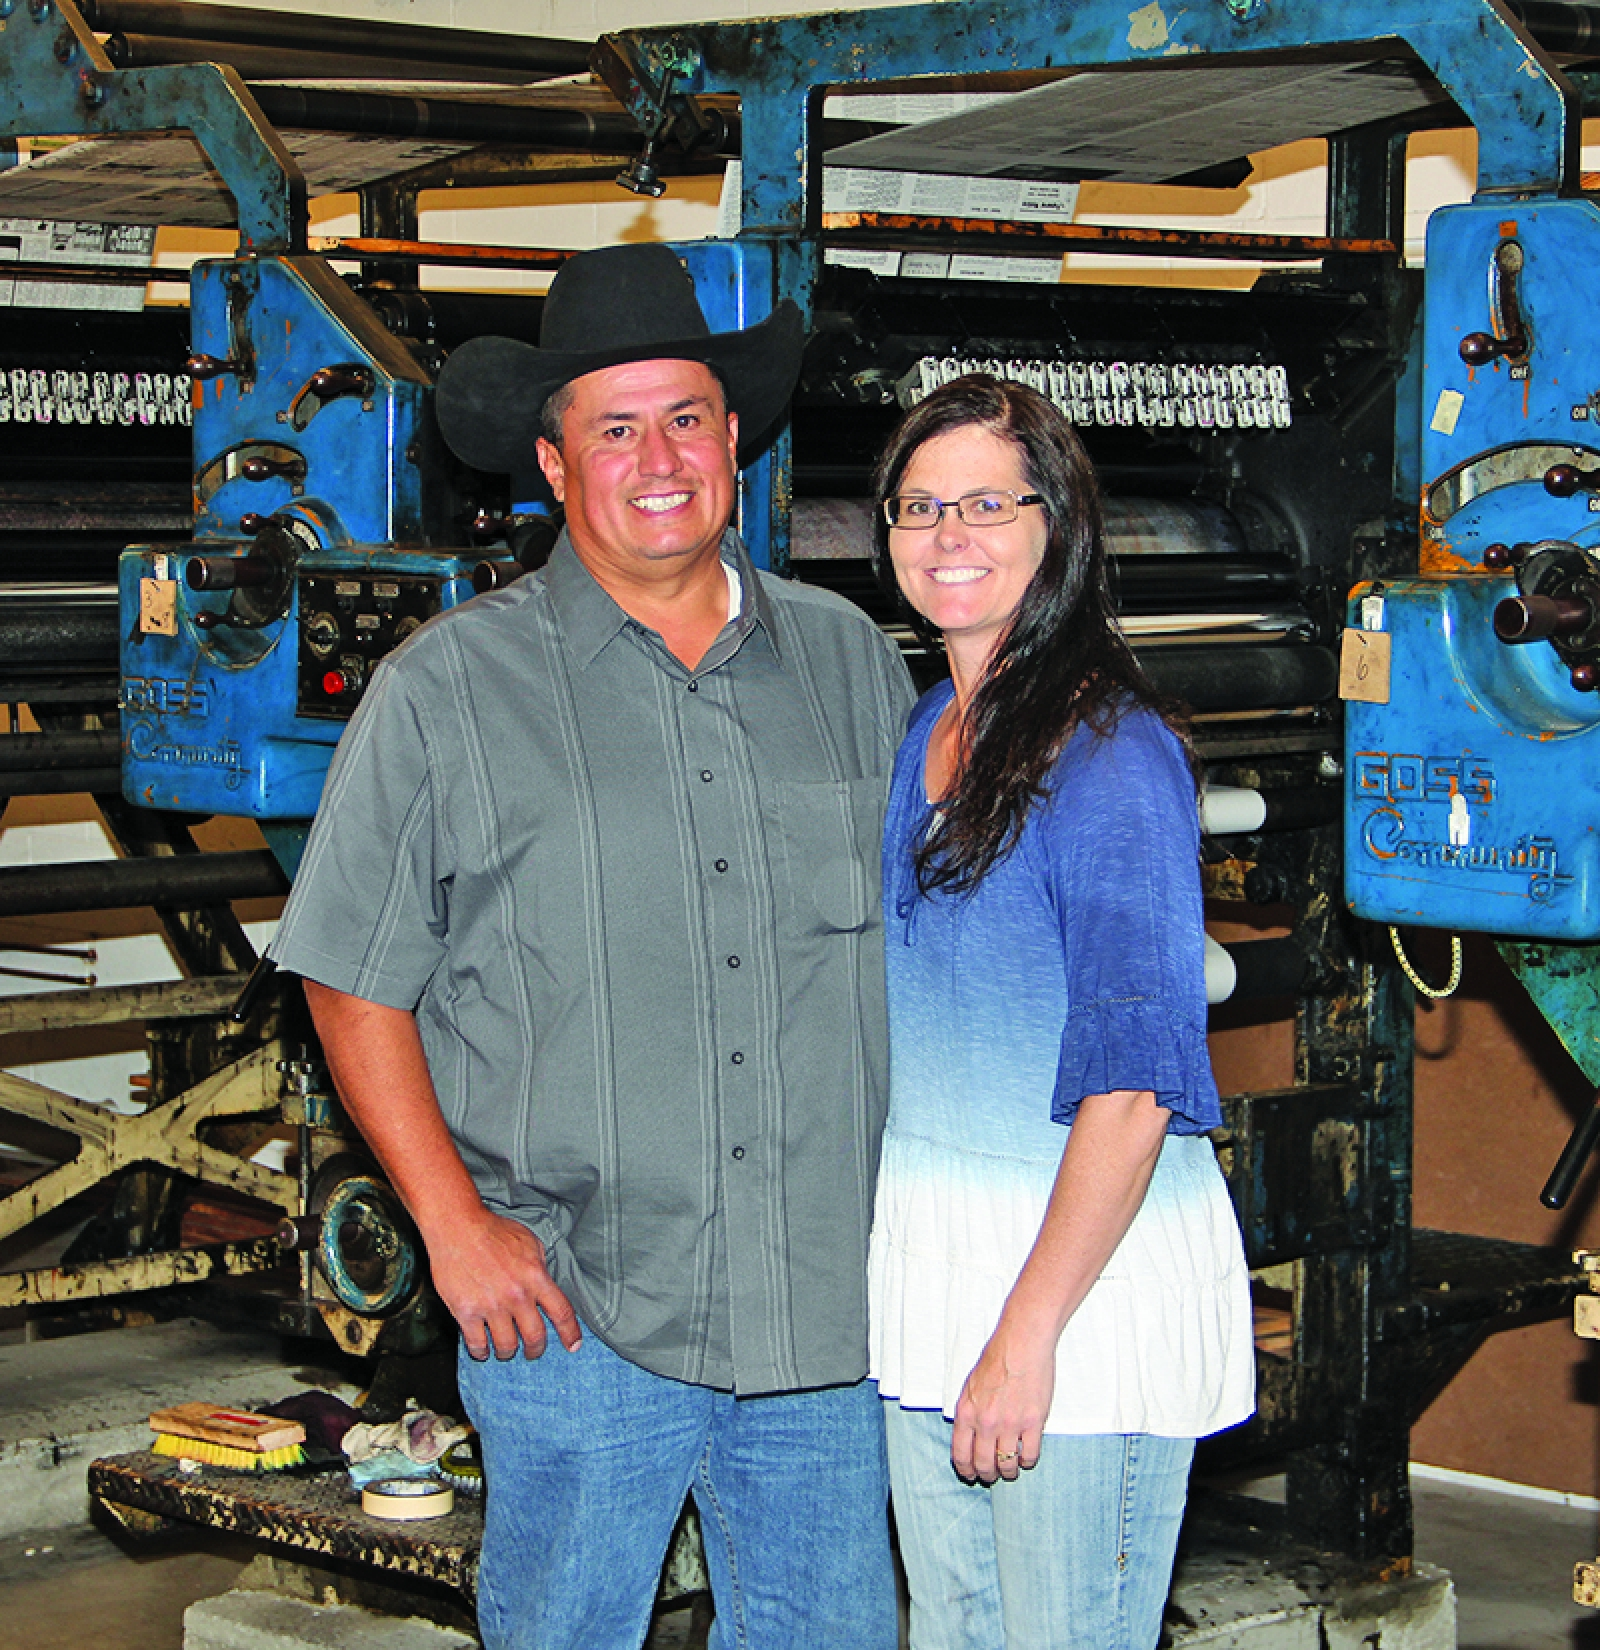 Bob and Mandy Scherer stand in front of the printing presses at the Bennett County Booster II.